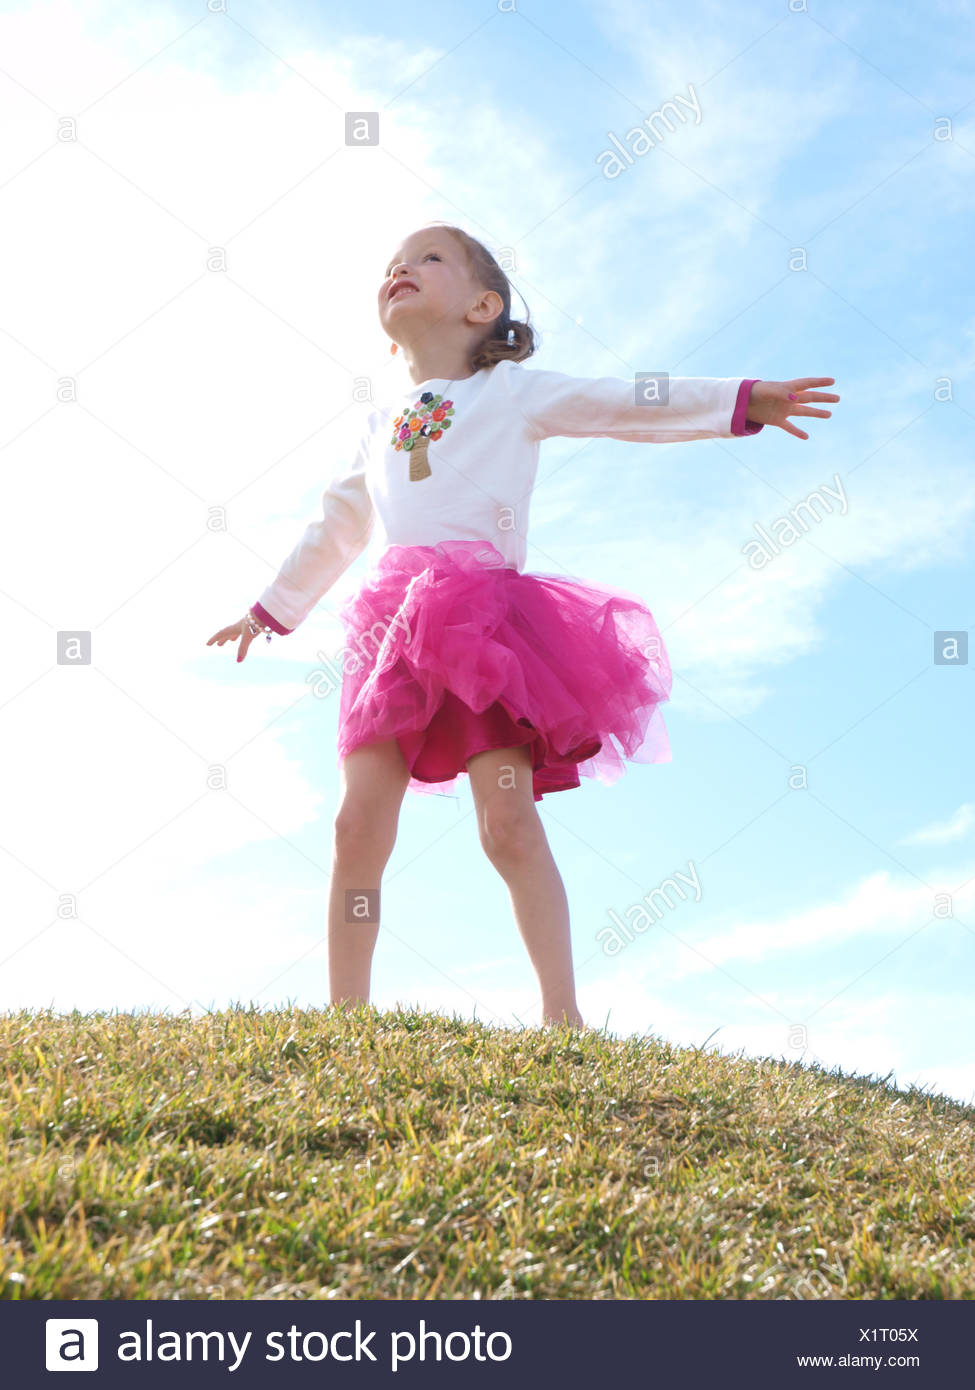 Girl Standing With Her Arms Outstretched - Stock Image